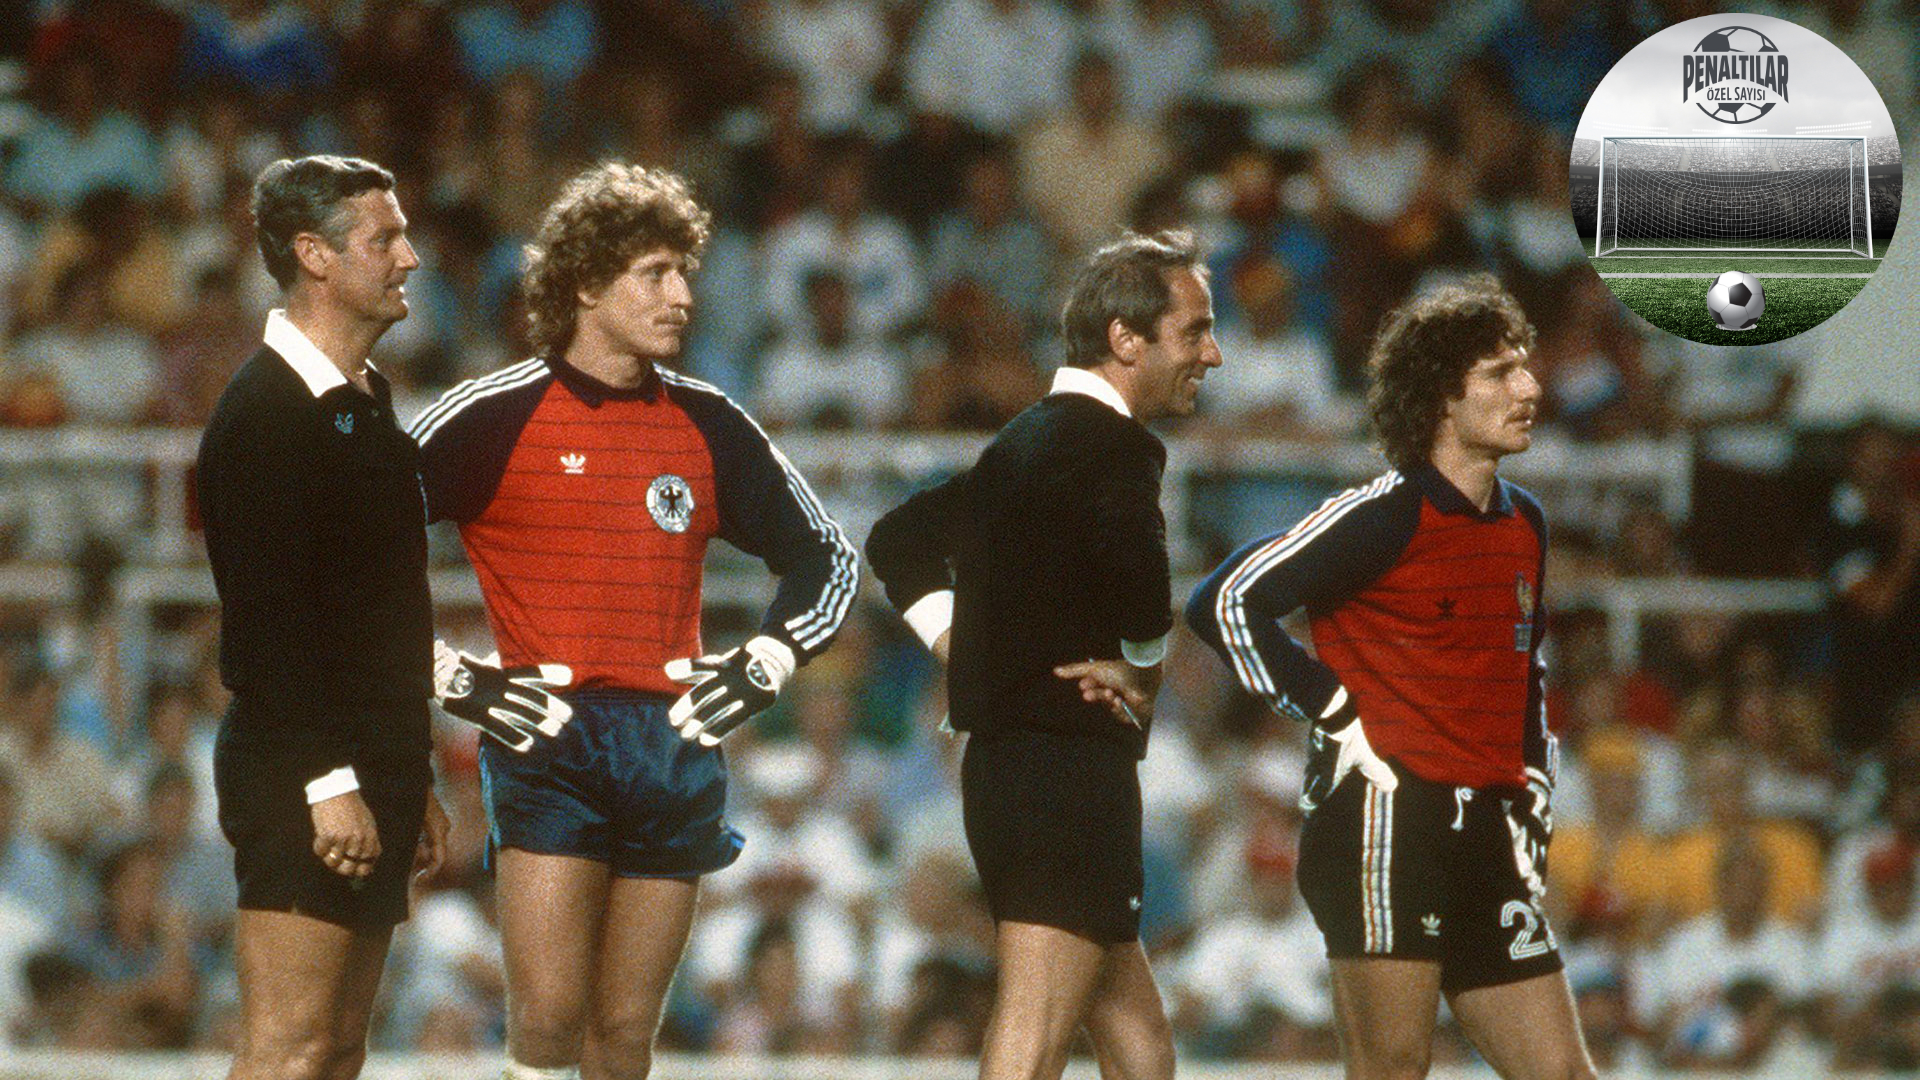 harald-schumacher-west-germany-france-world-cup-1982_vvl859f64diz1oflerj69a4fr